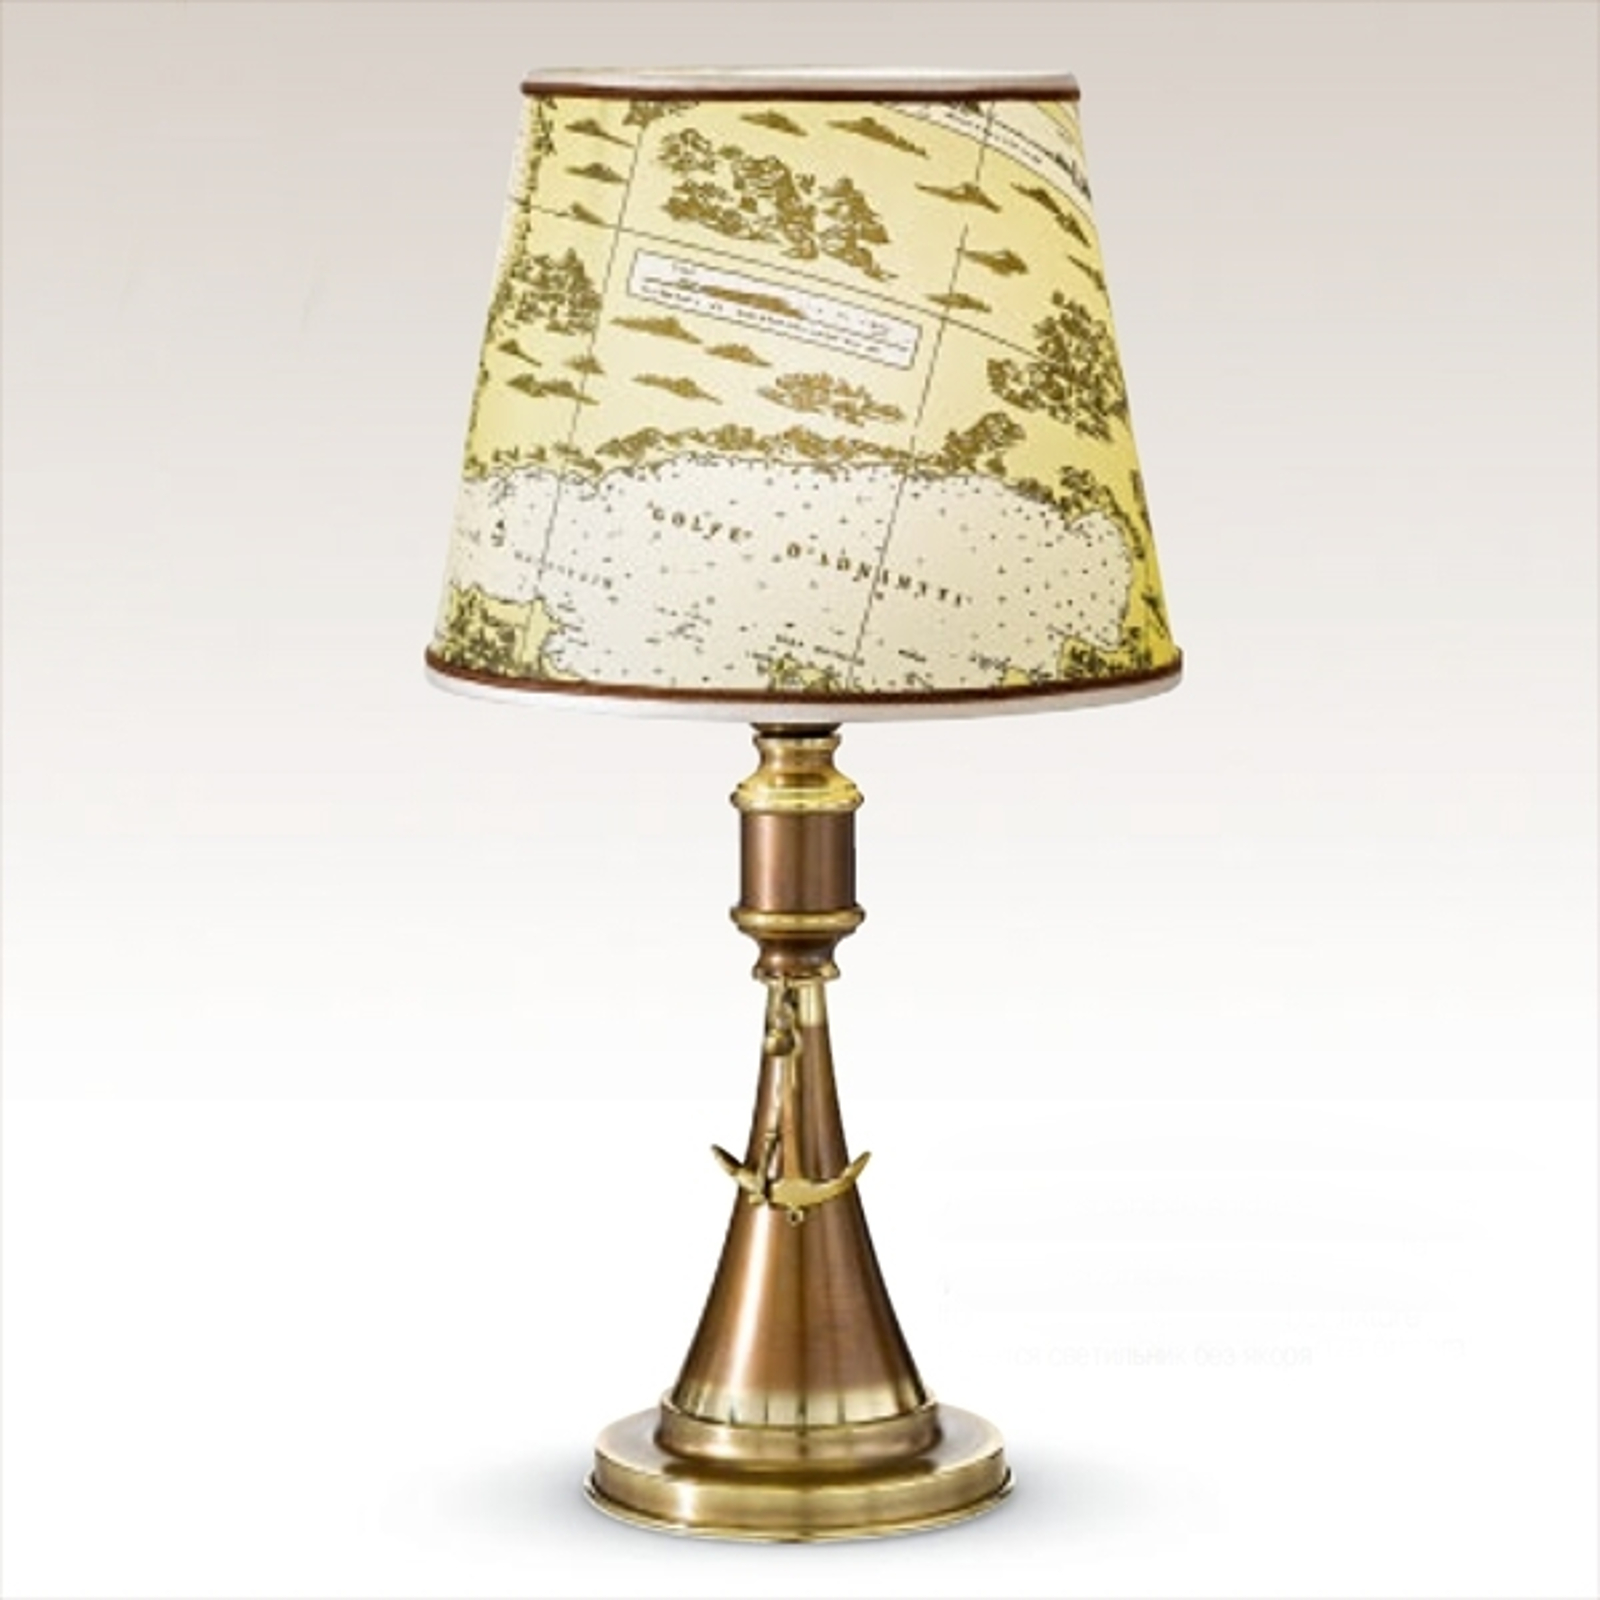 Laguna maritime table lamp, 48 cm_2008094_1